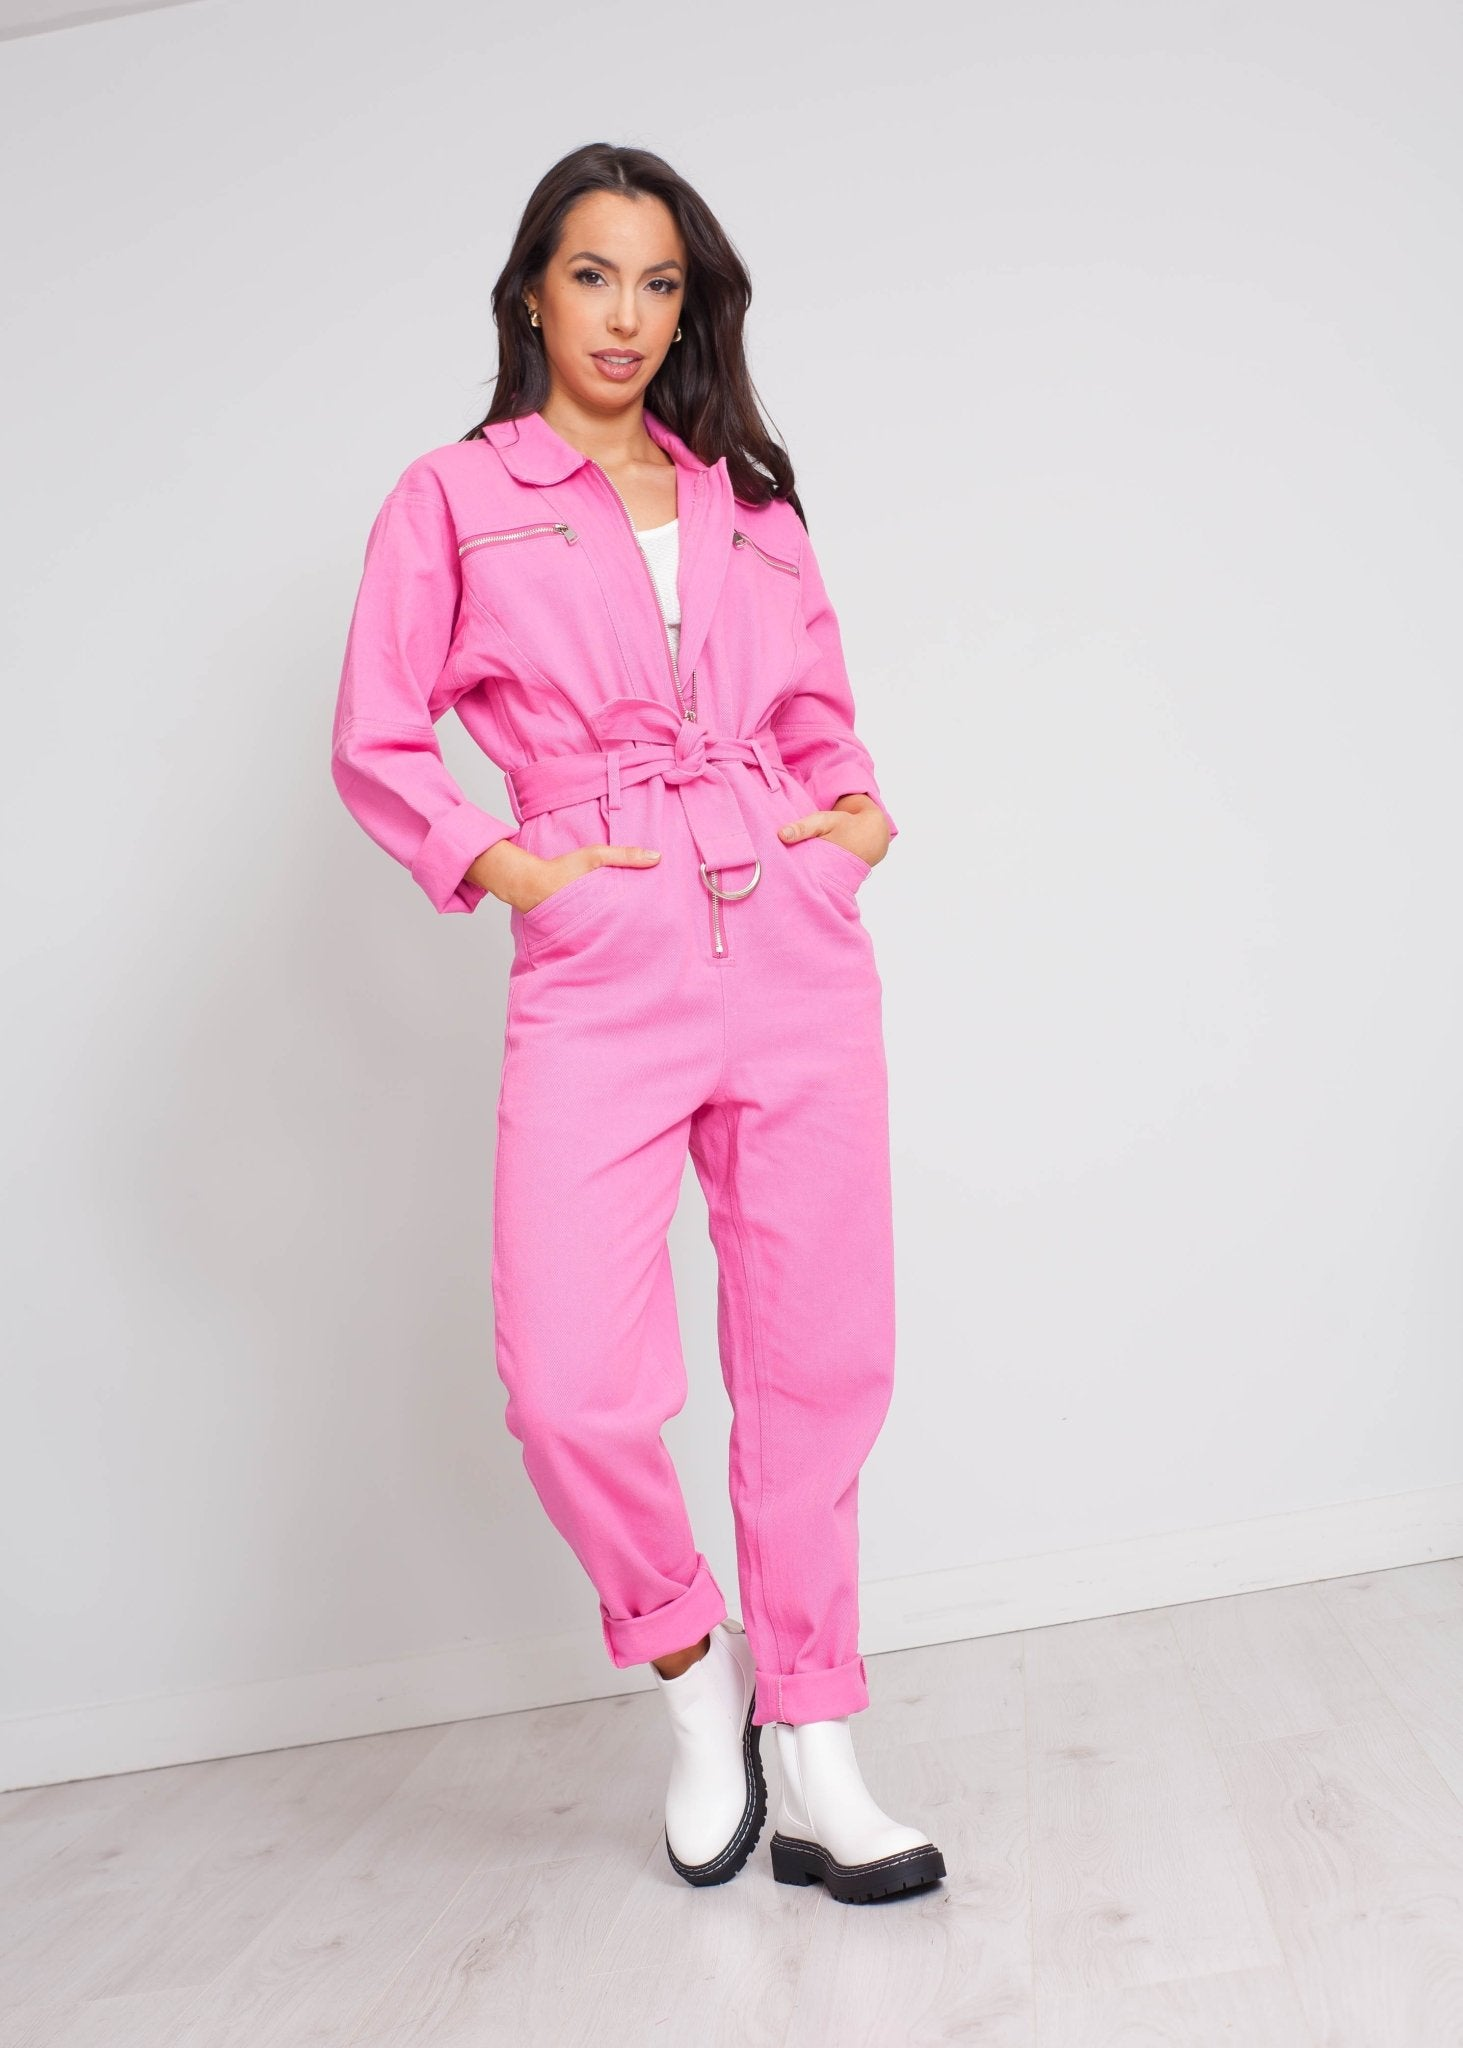 Daisy Denim Jumpsuit In Pink - The Walk in Wardrobe